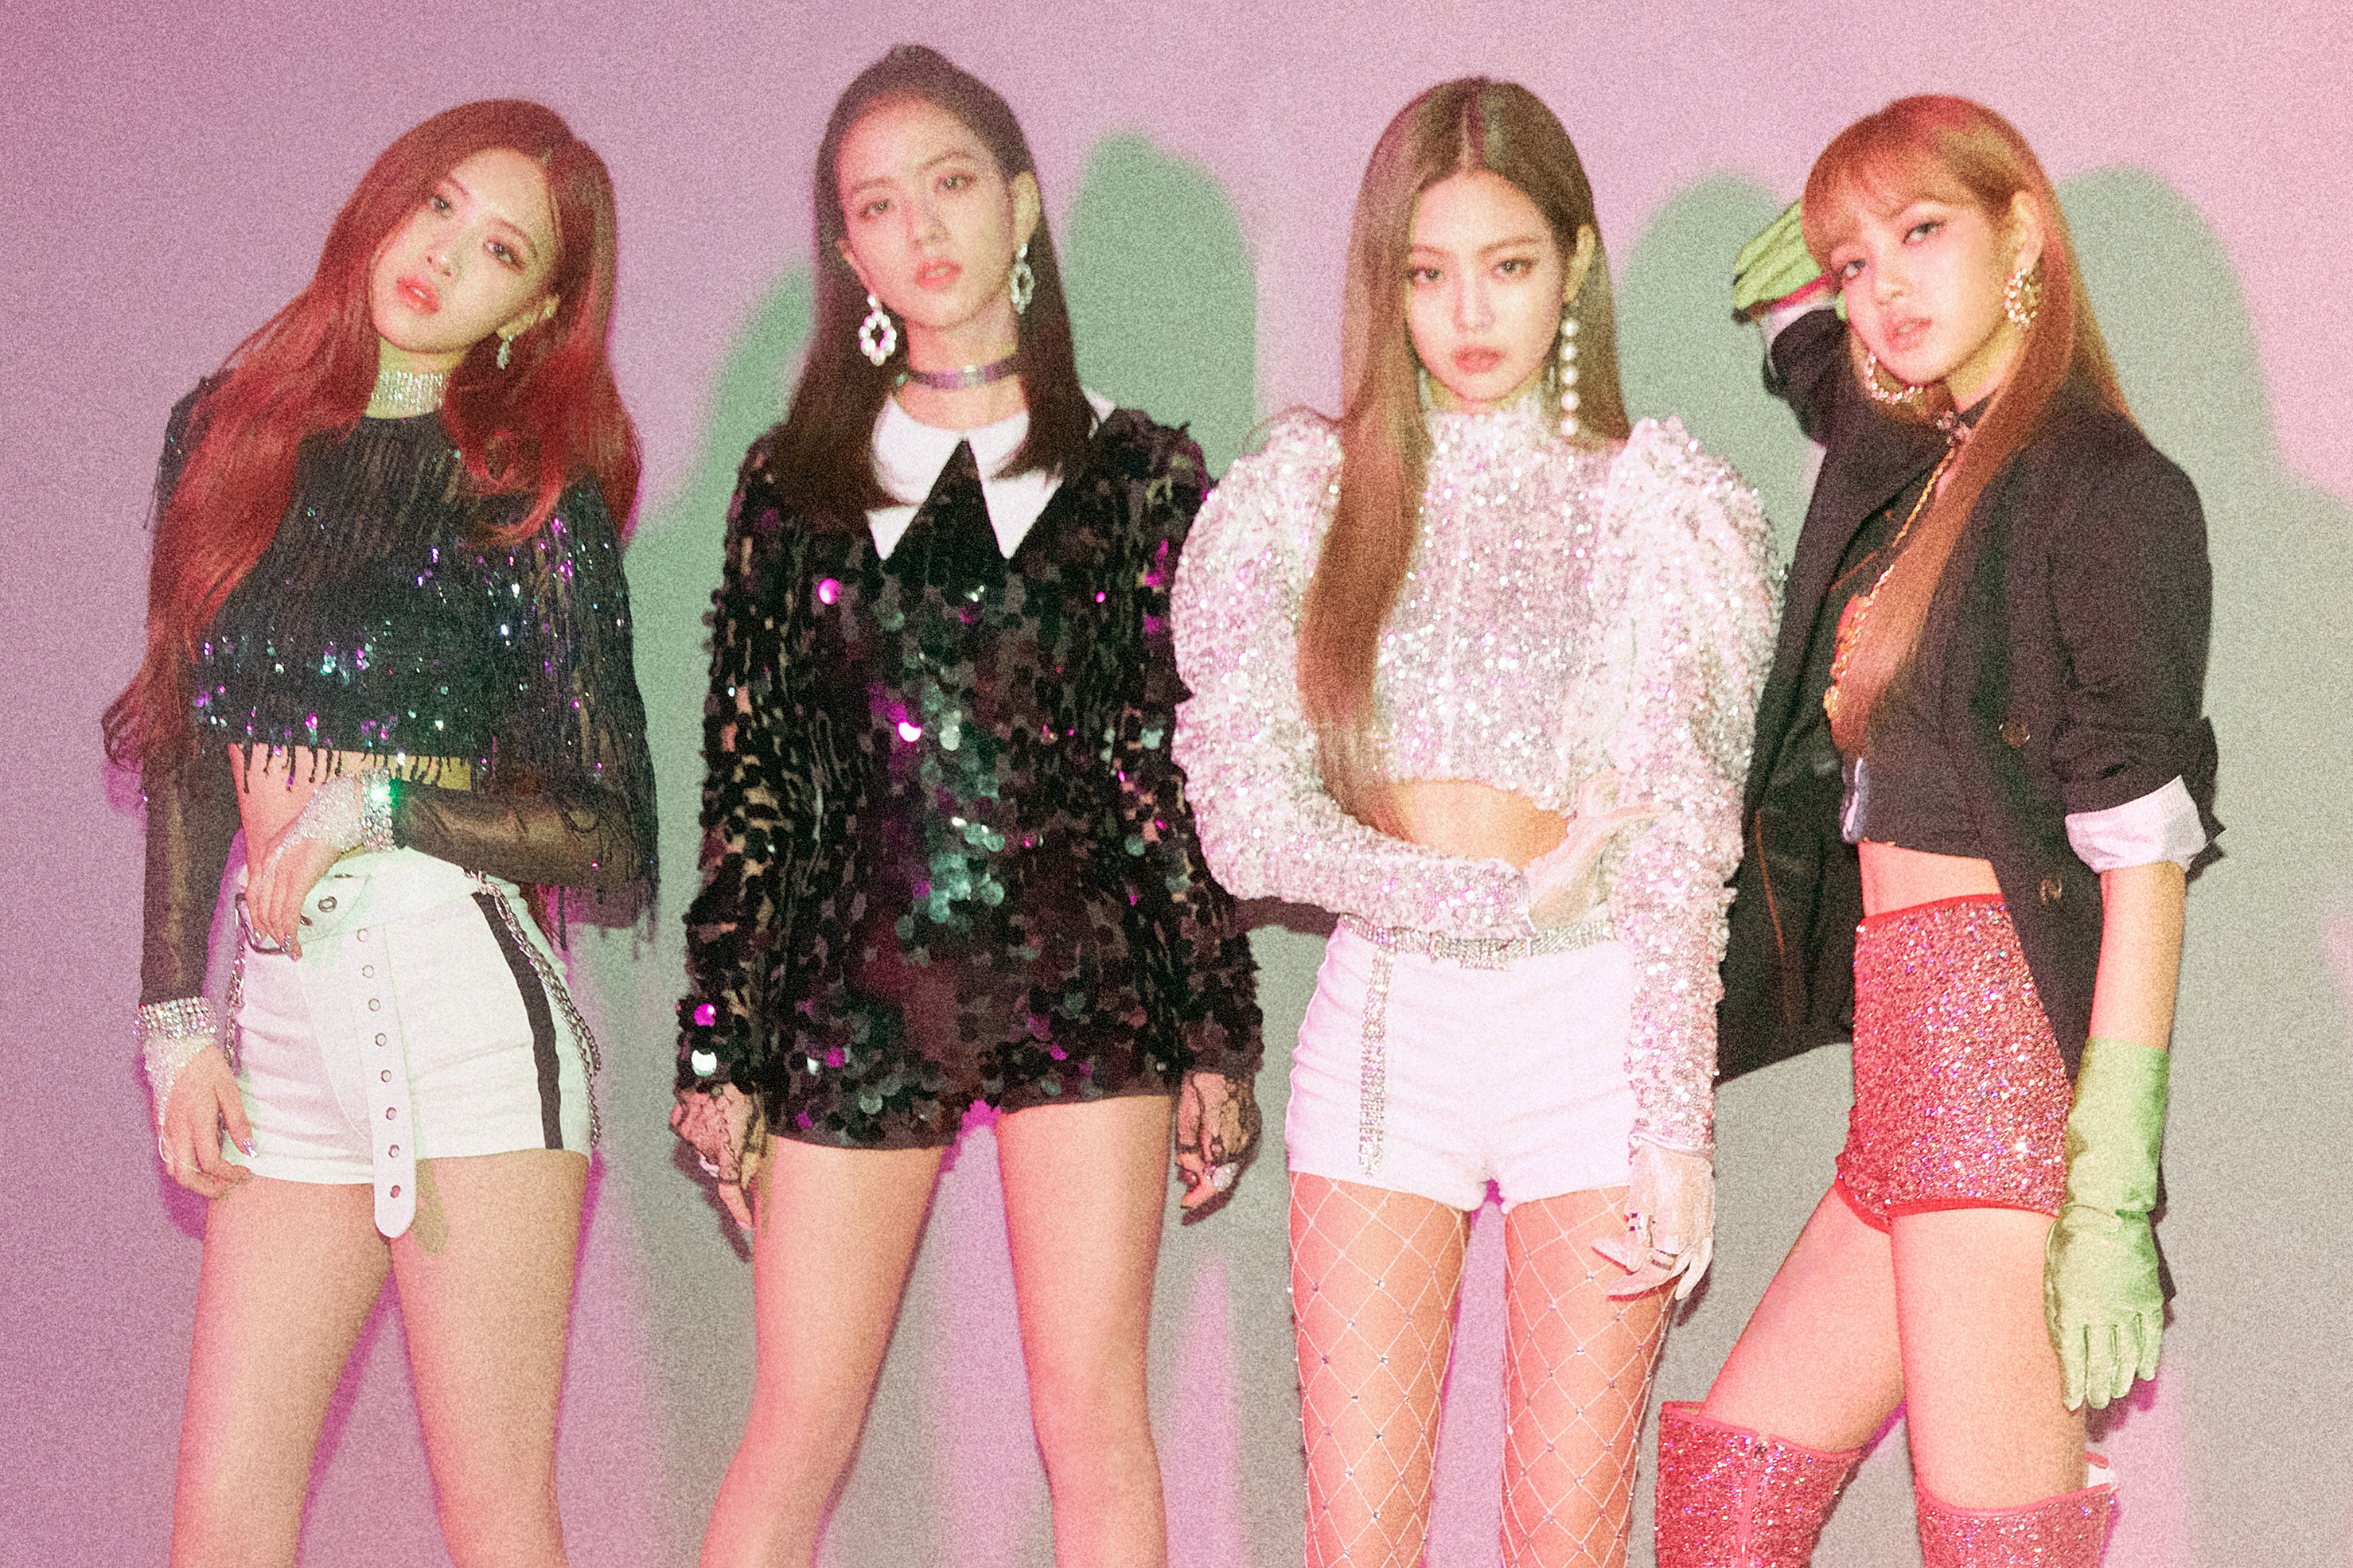 Blackpink 5 Things to Know About K Pop Group Playing Coachella 2957x1971